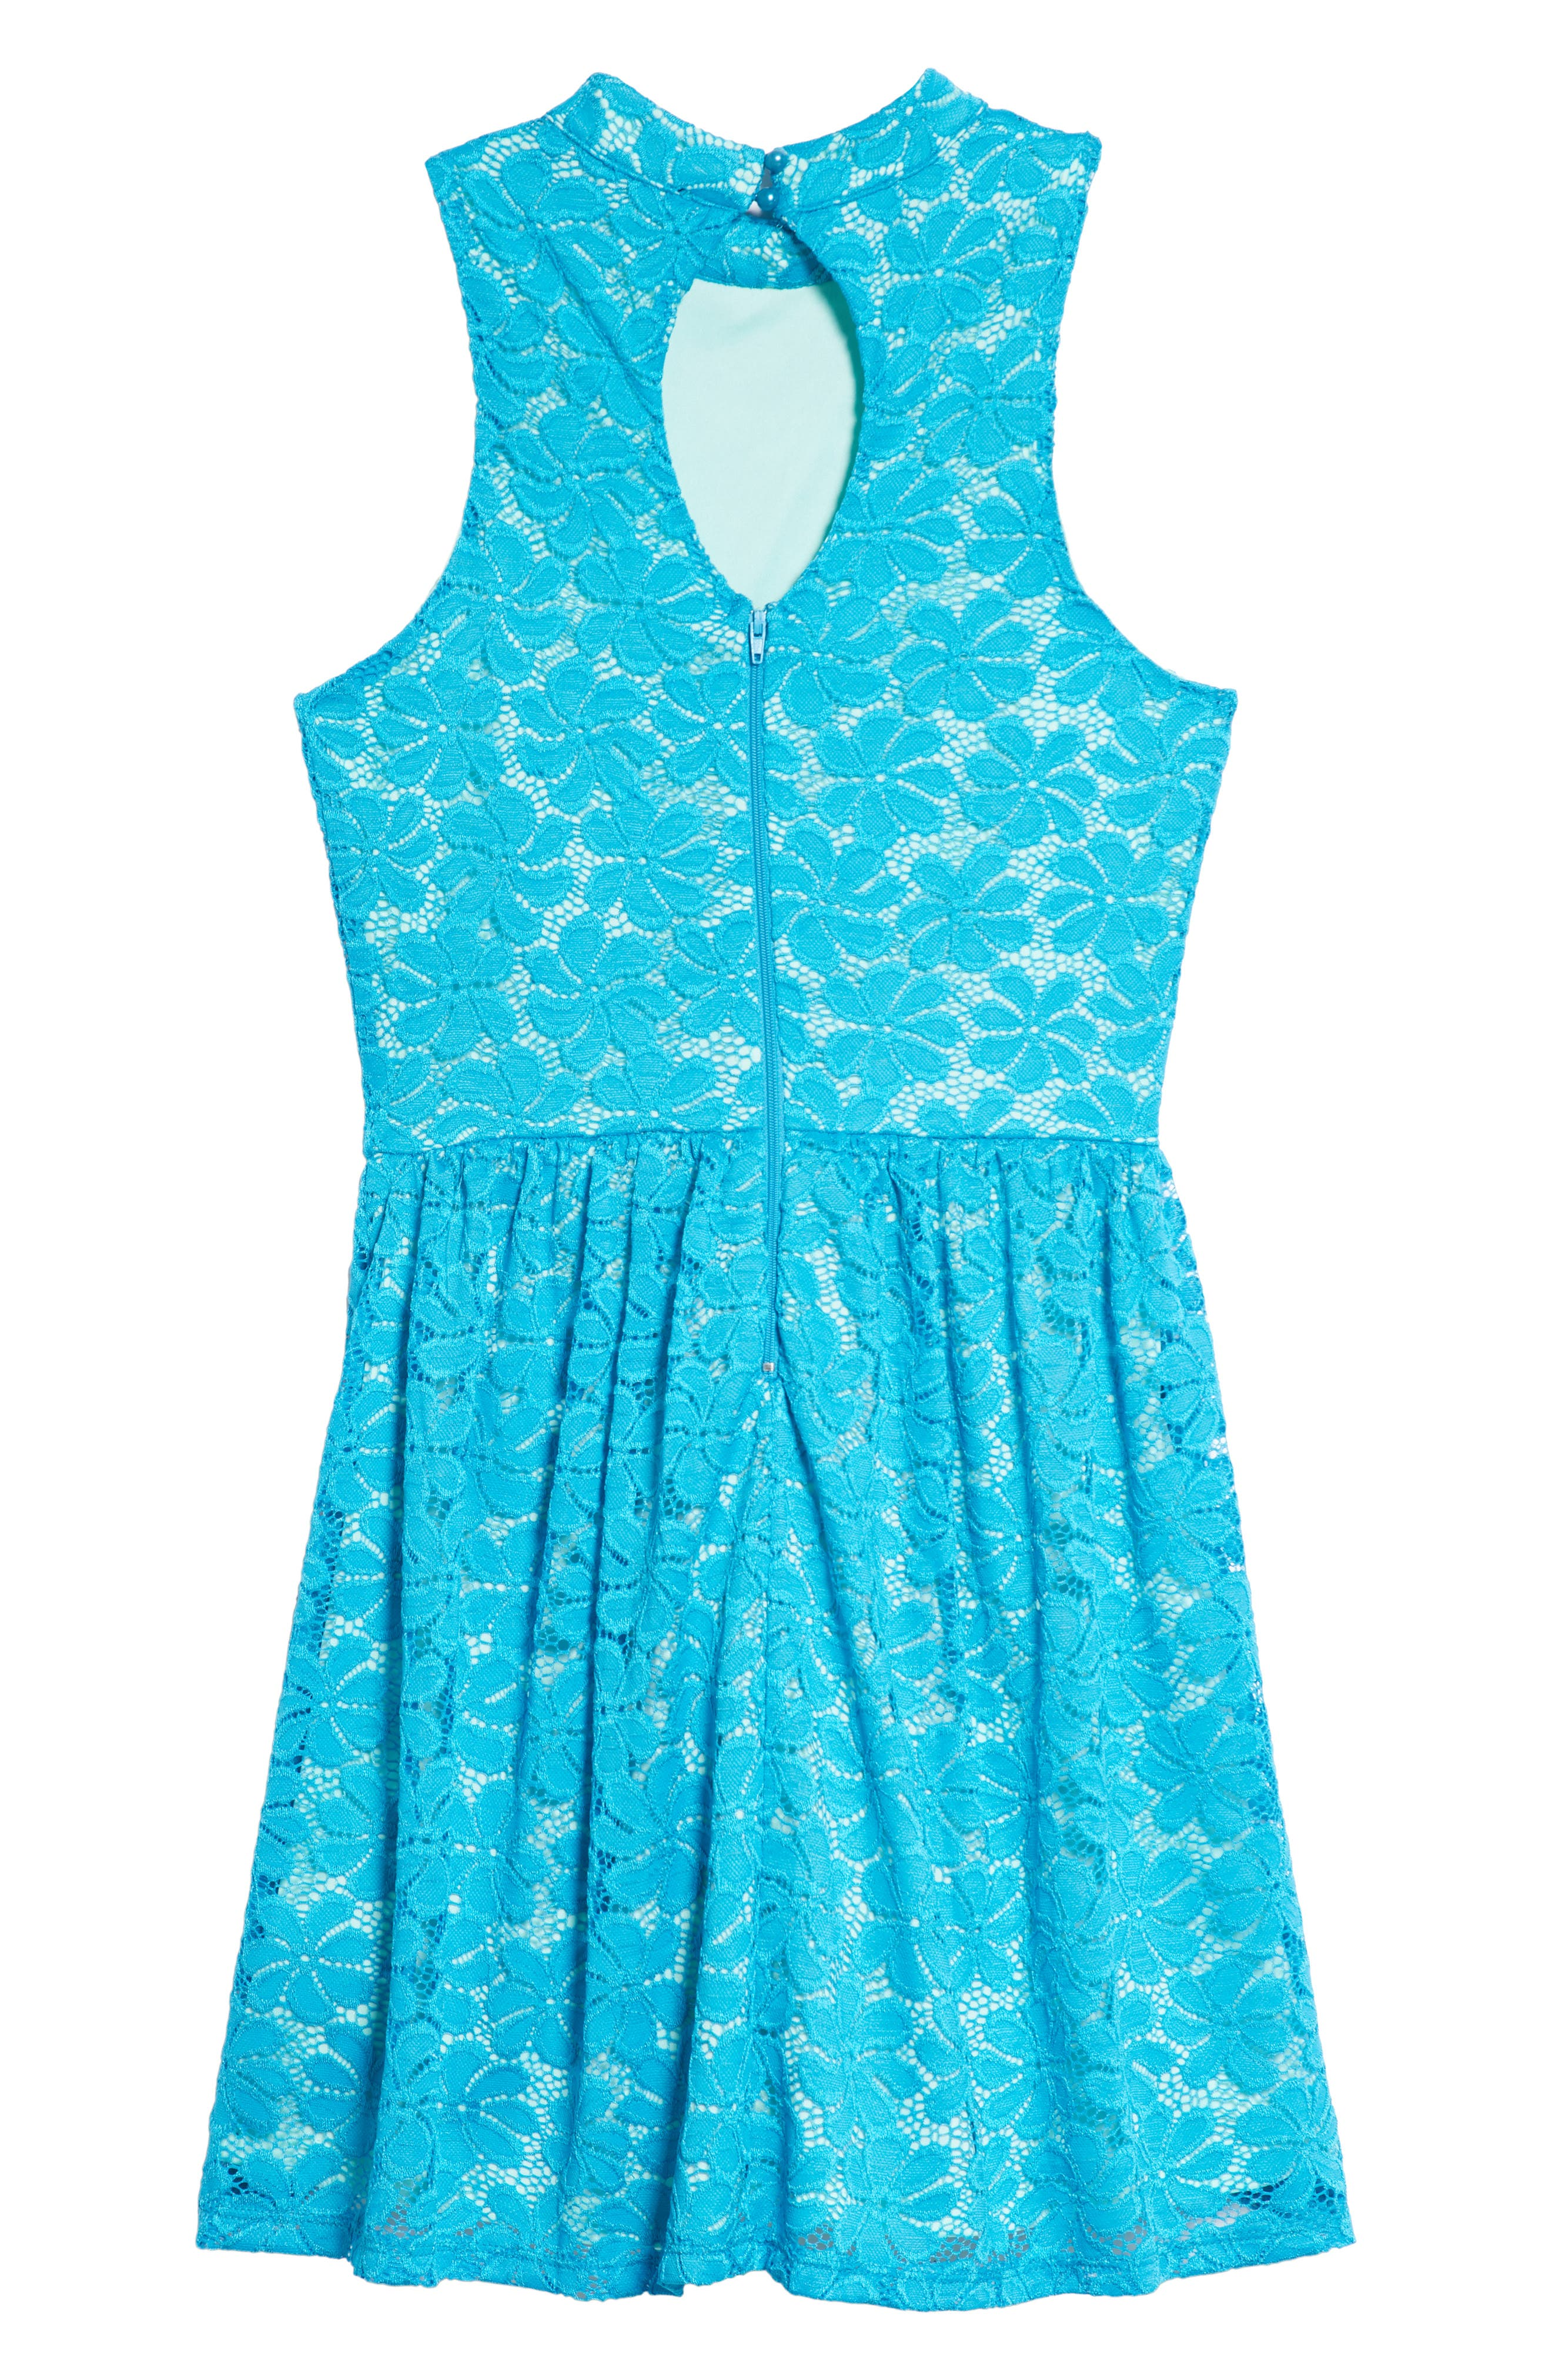 Hailee Lace Dress,                             Alternate thumbnail 2, color,                             Teal